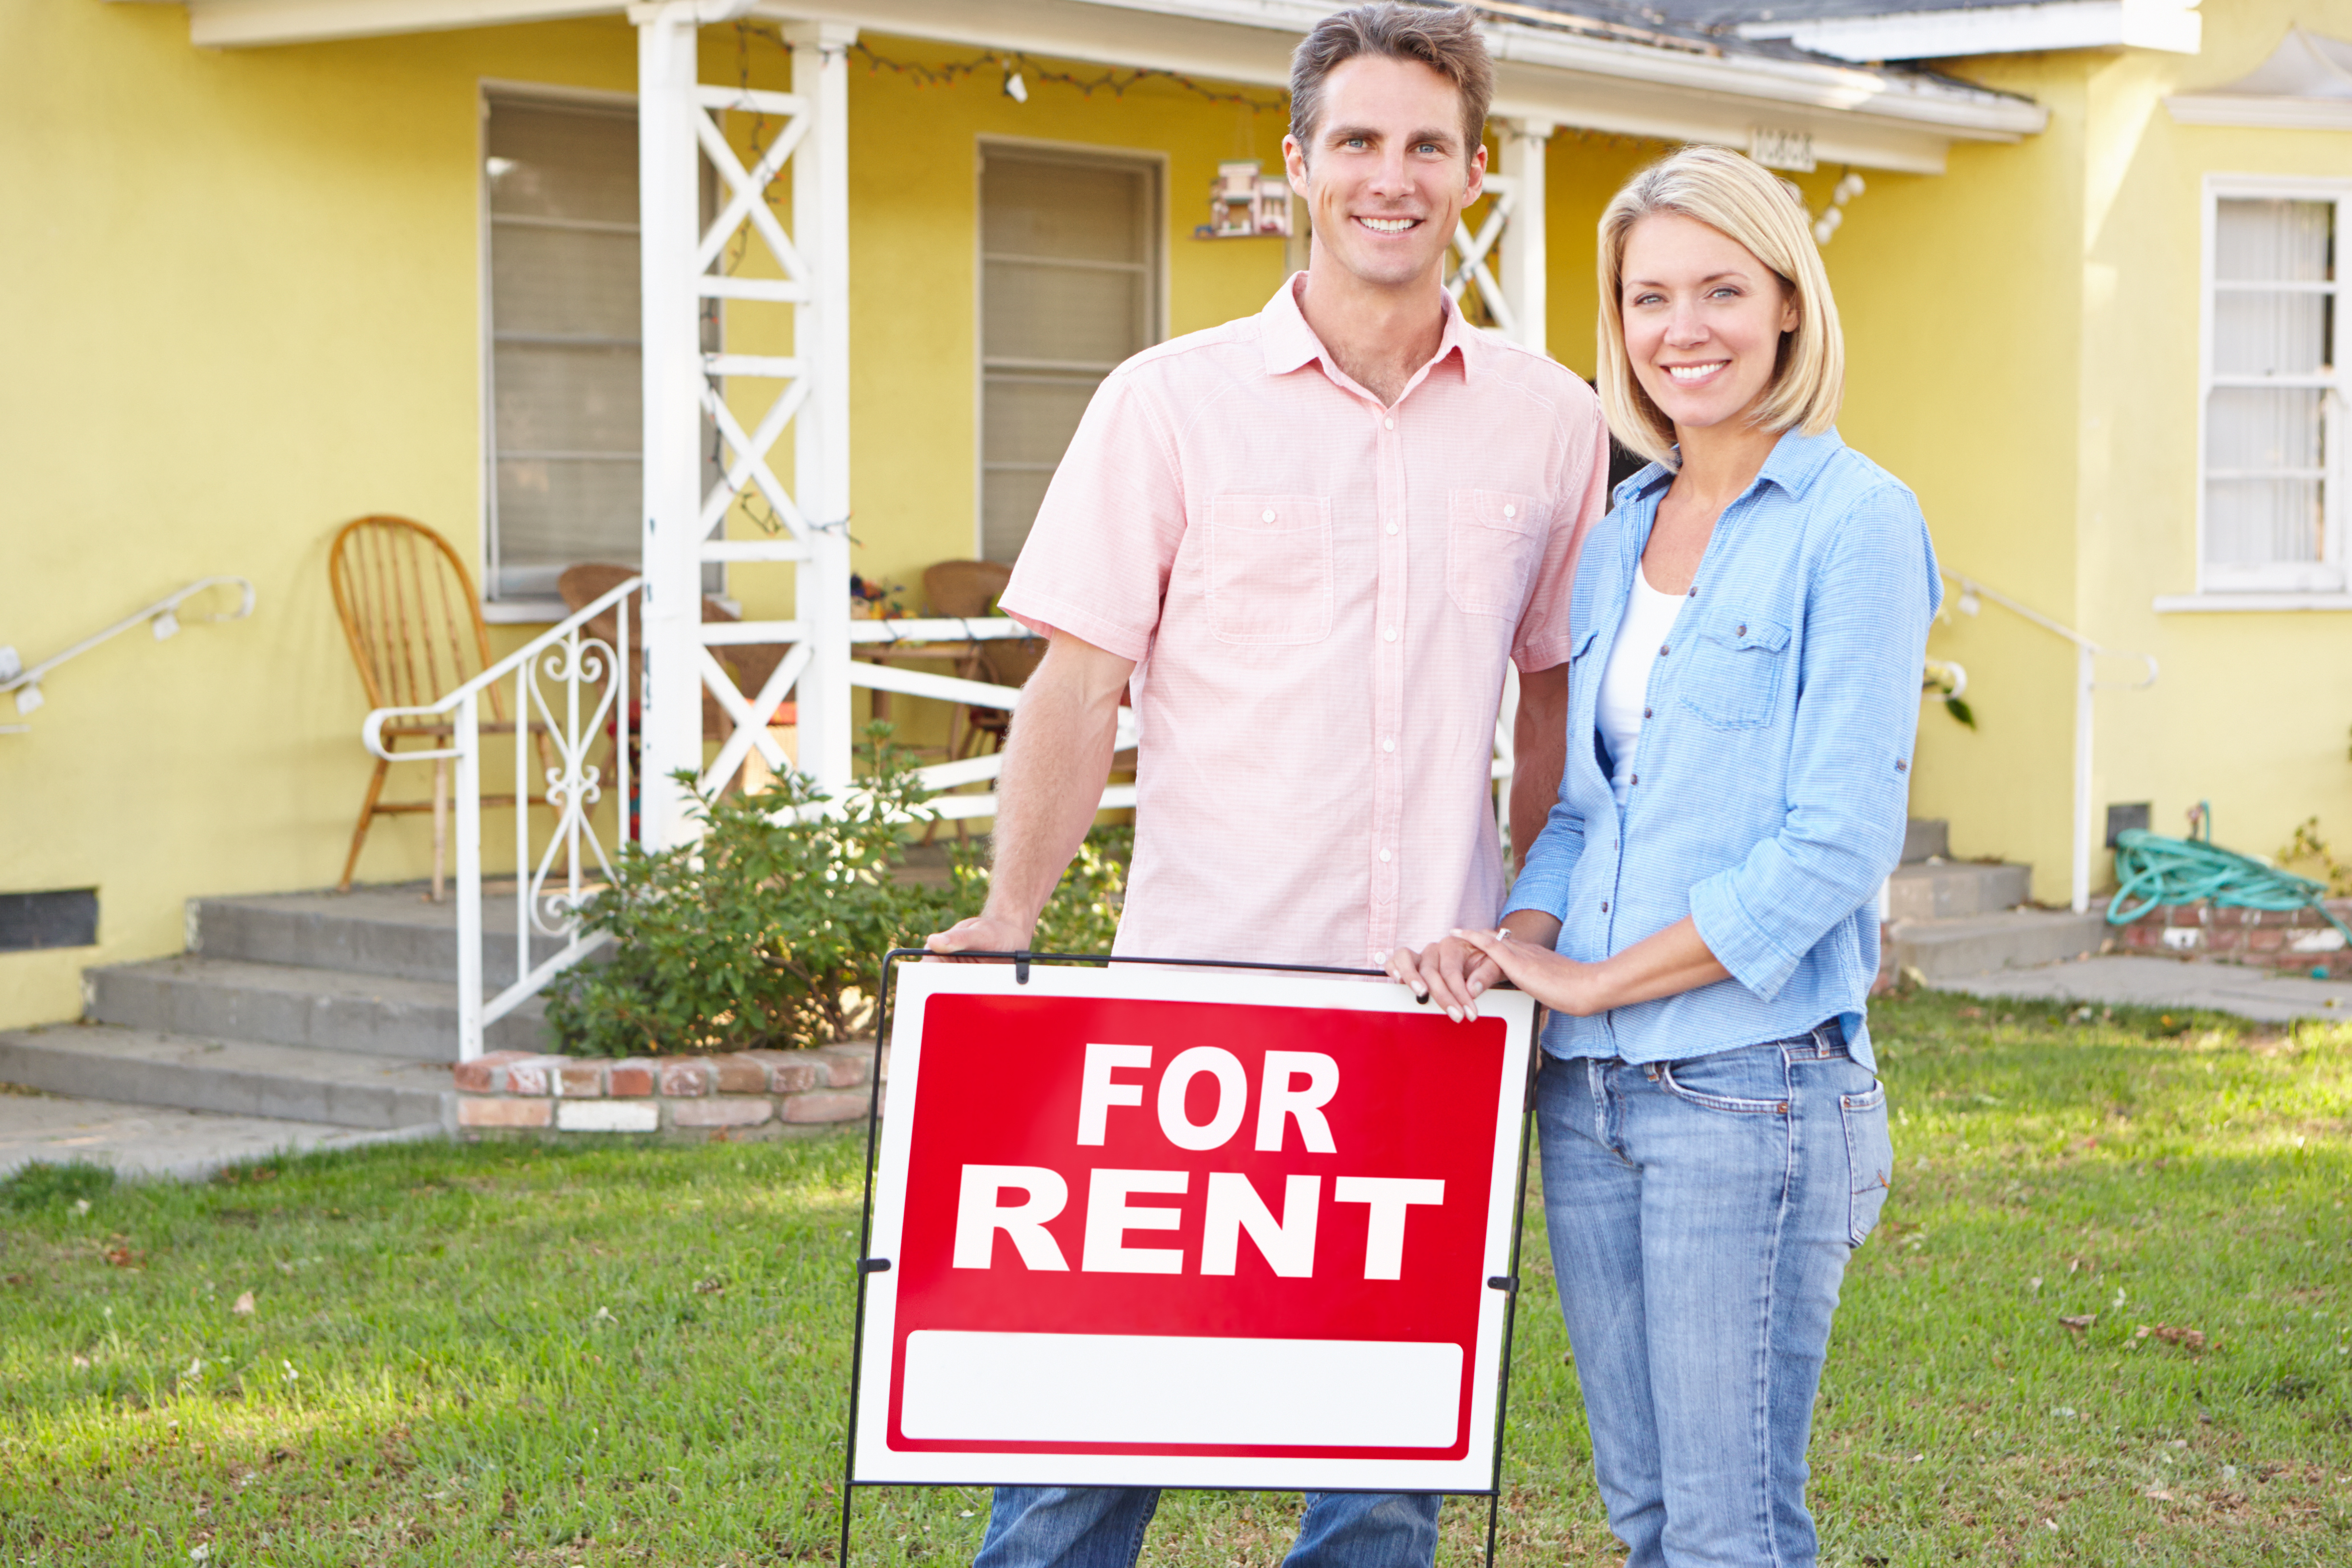 Lovely Couple Standing By For Rent Sign Outside Home